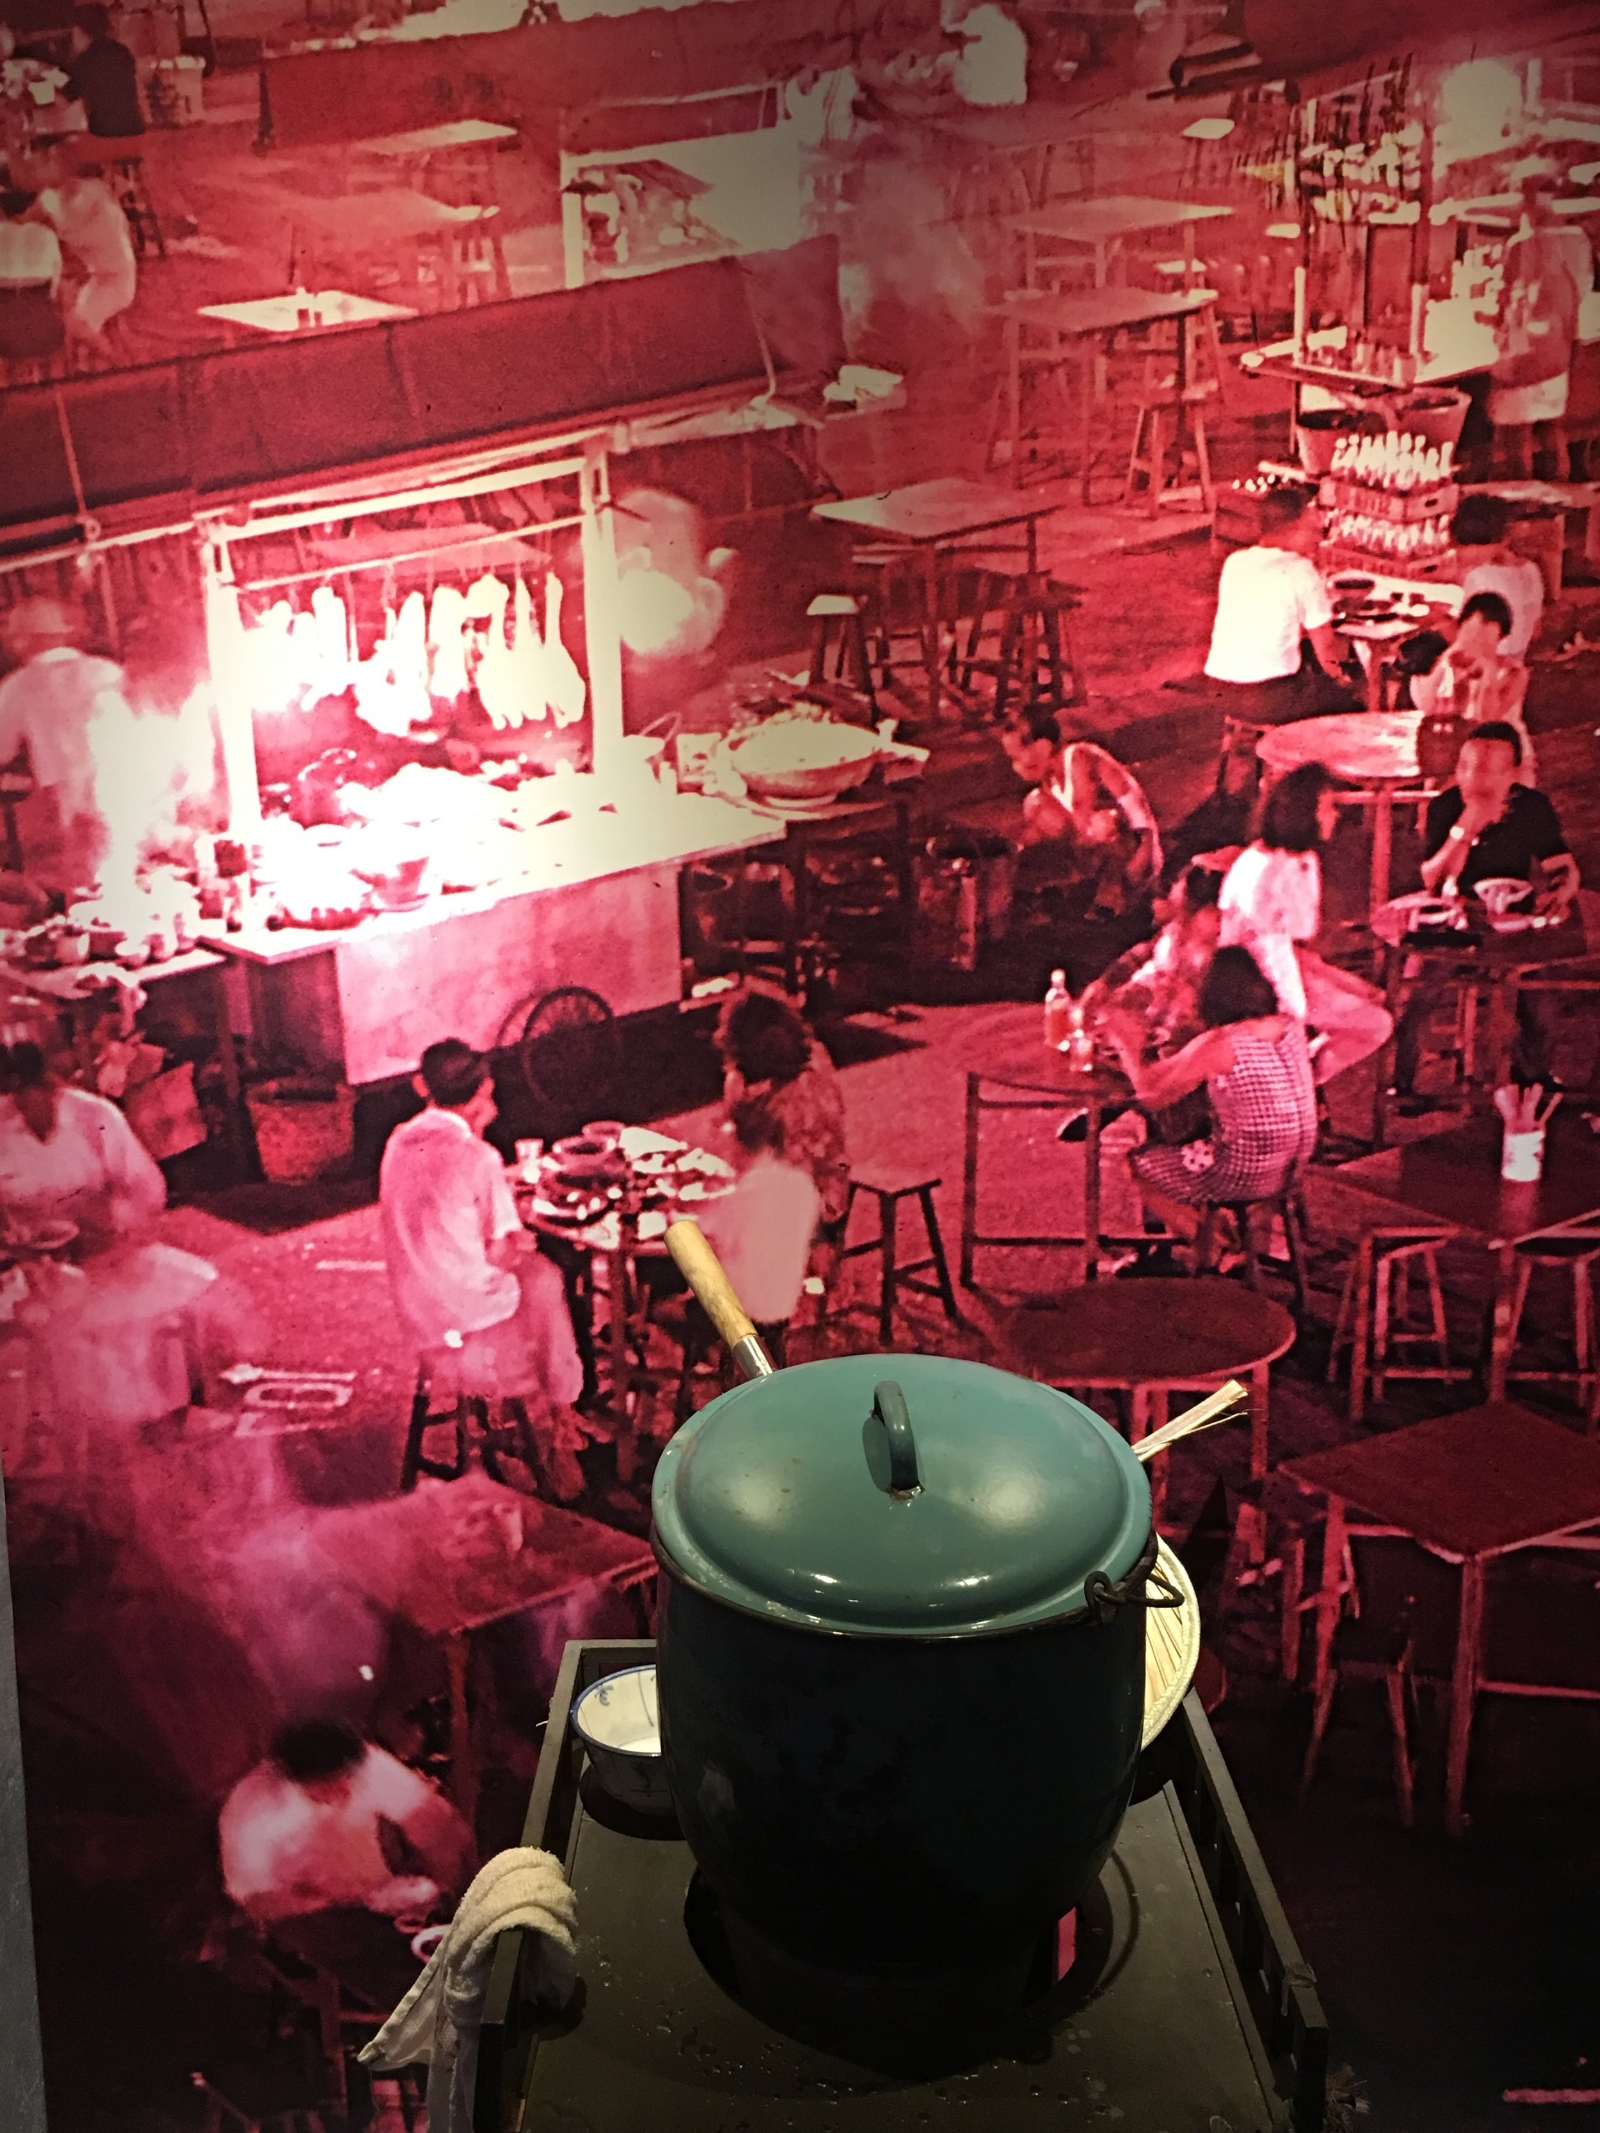 Above is a snapshot of a hawker stall in 1970s Singapore Chinatown. Photo credit: Chinatown Heritage Center.